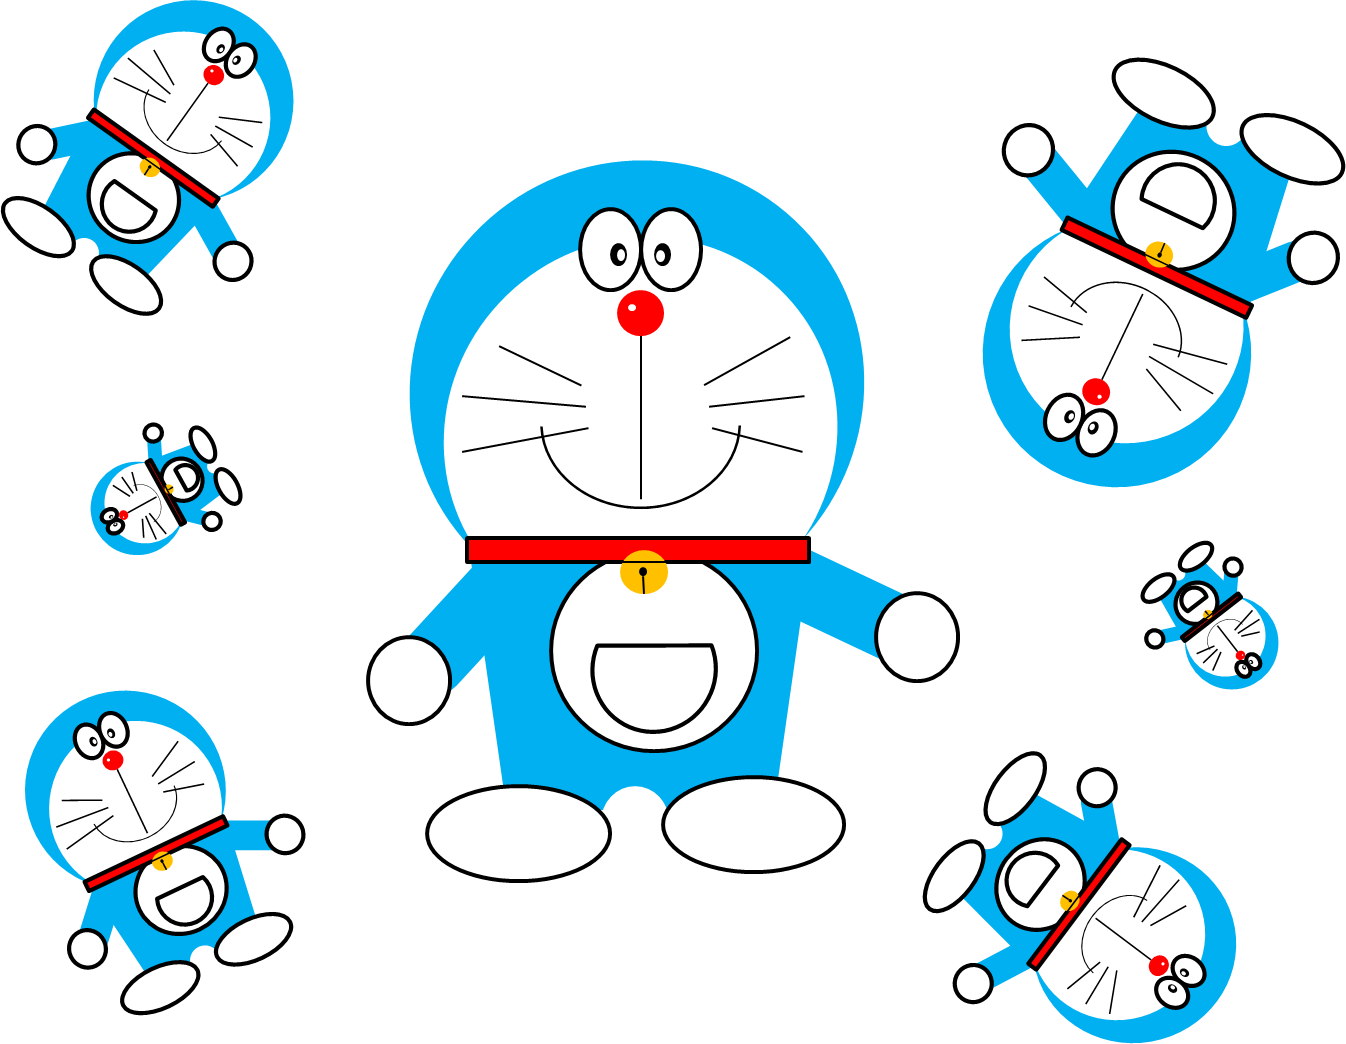 Download 75 Wallpaper Bergerak Doraemon Gratis Terbaru